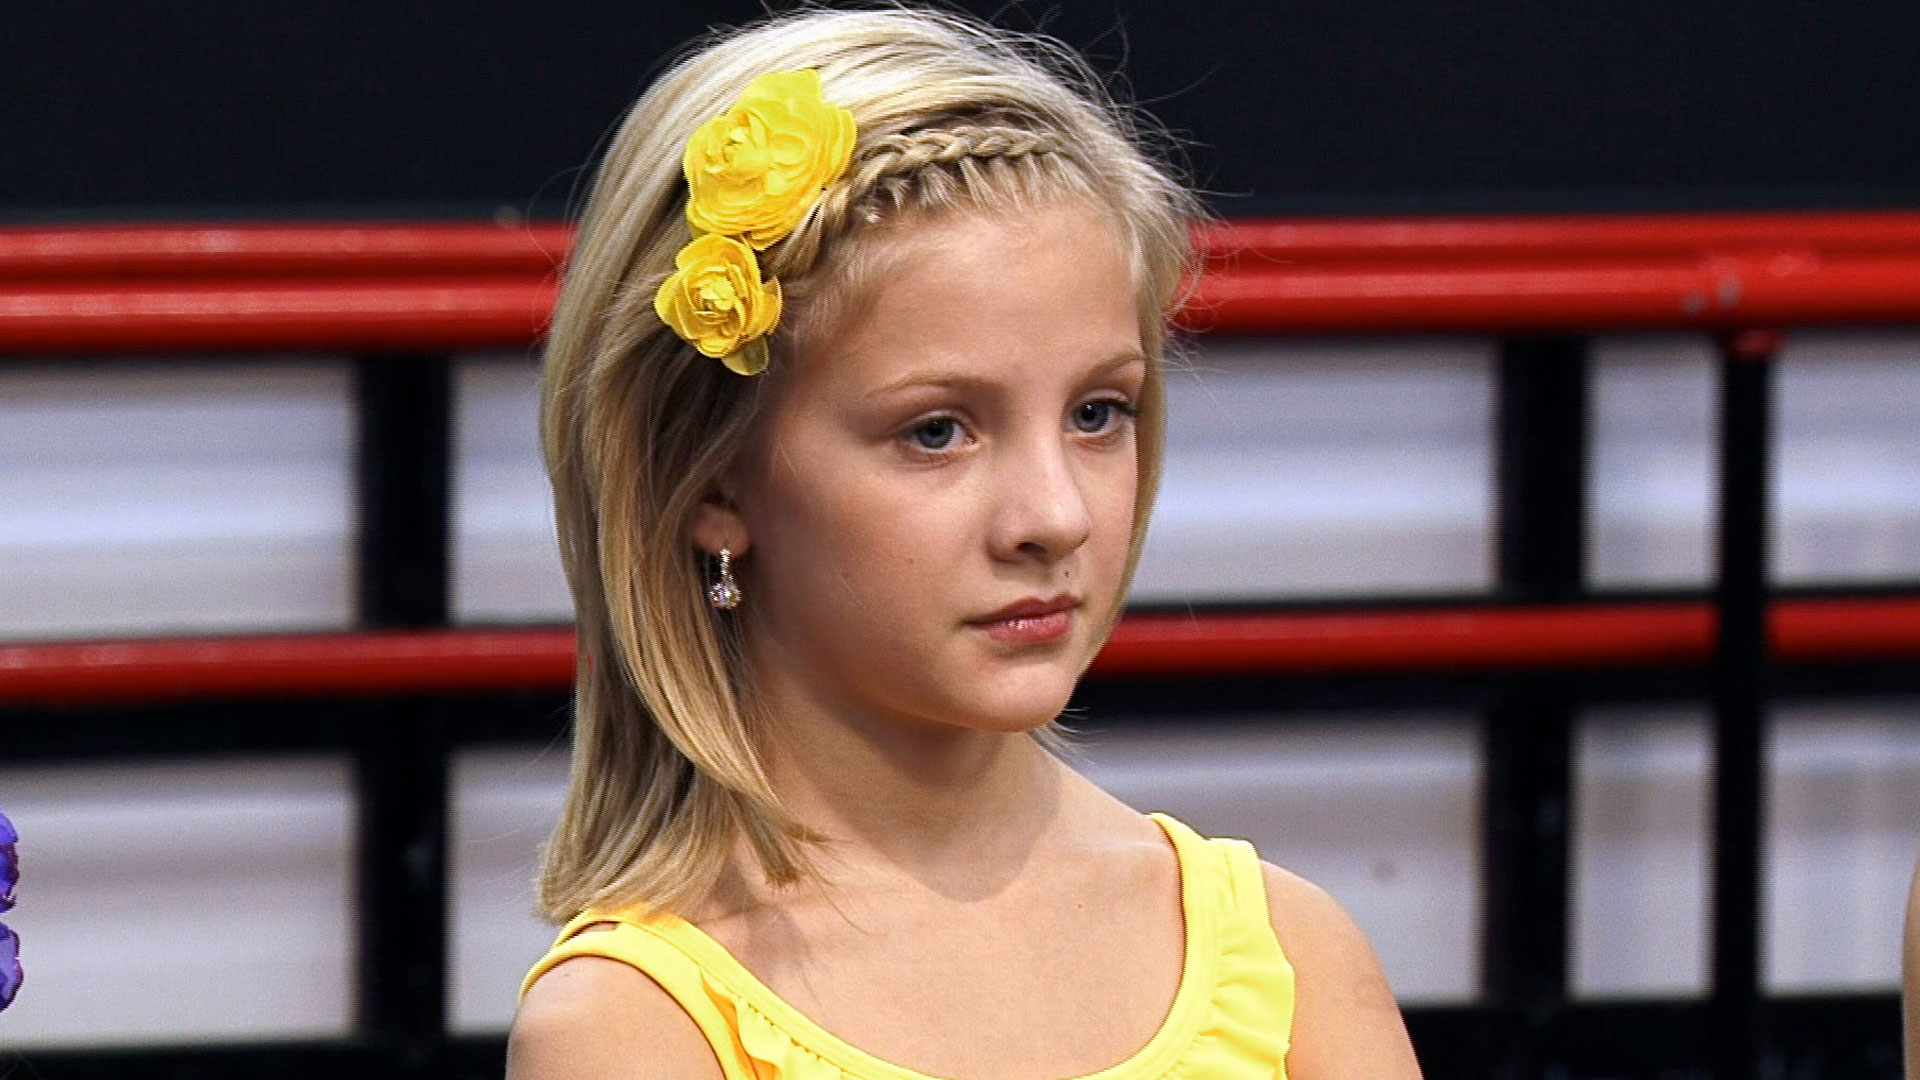 Dance Moms : No One Likes a Bully